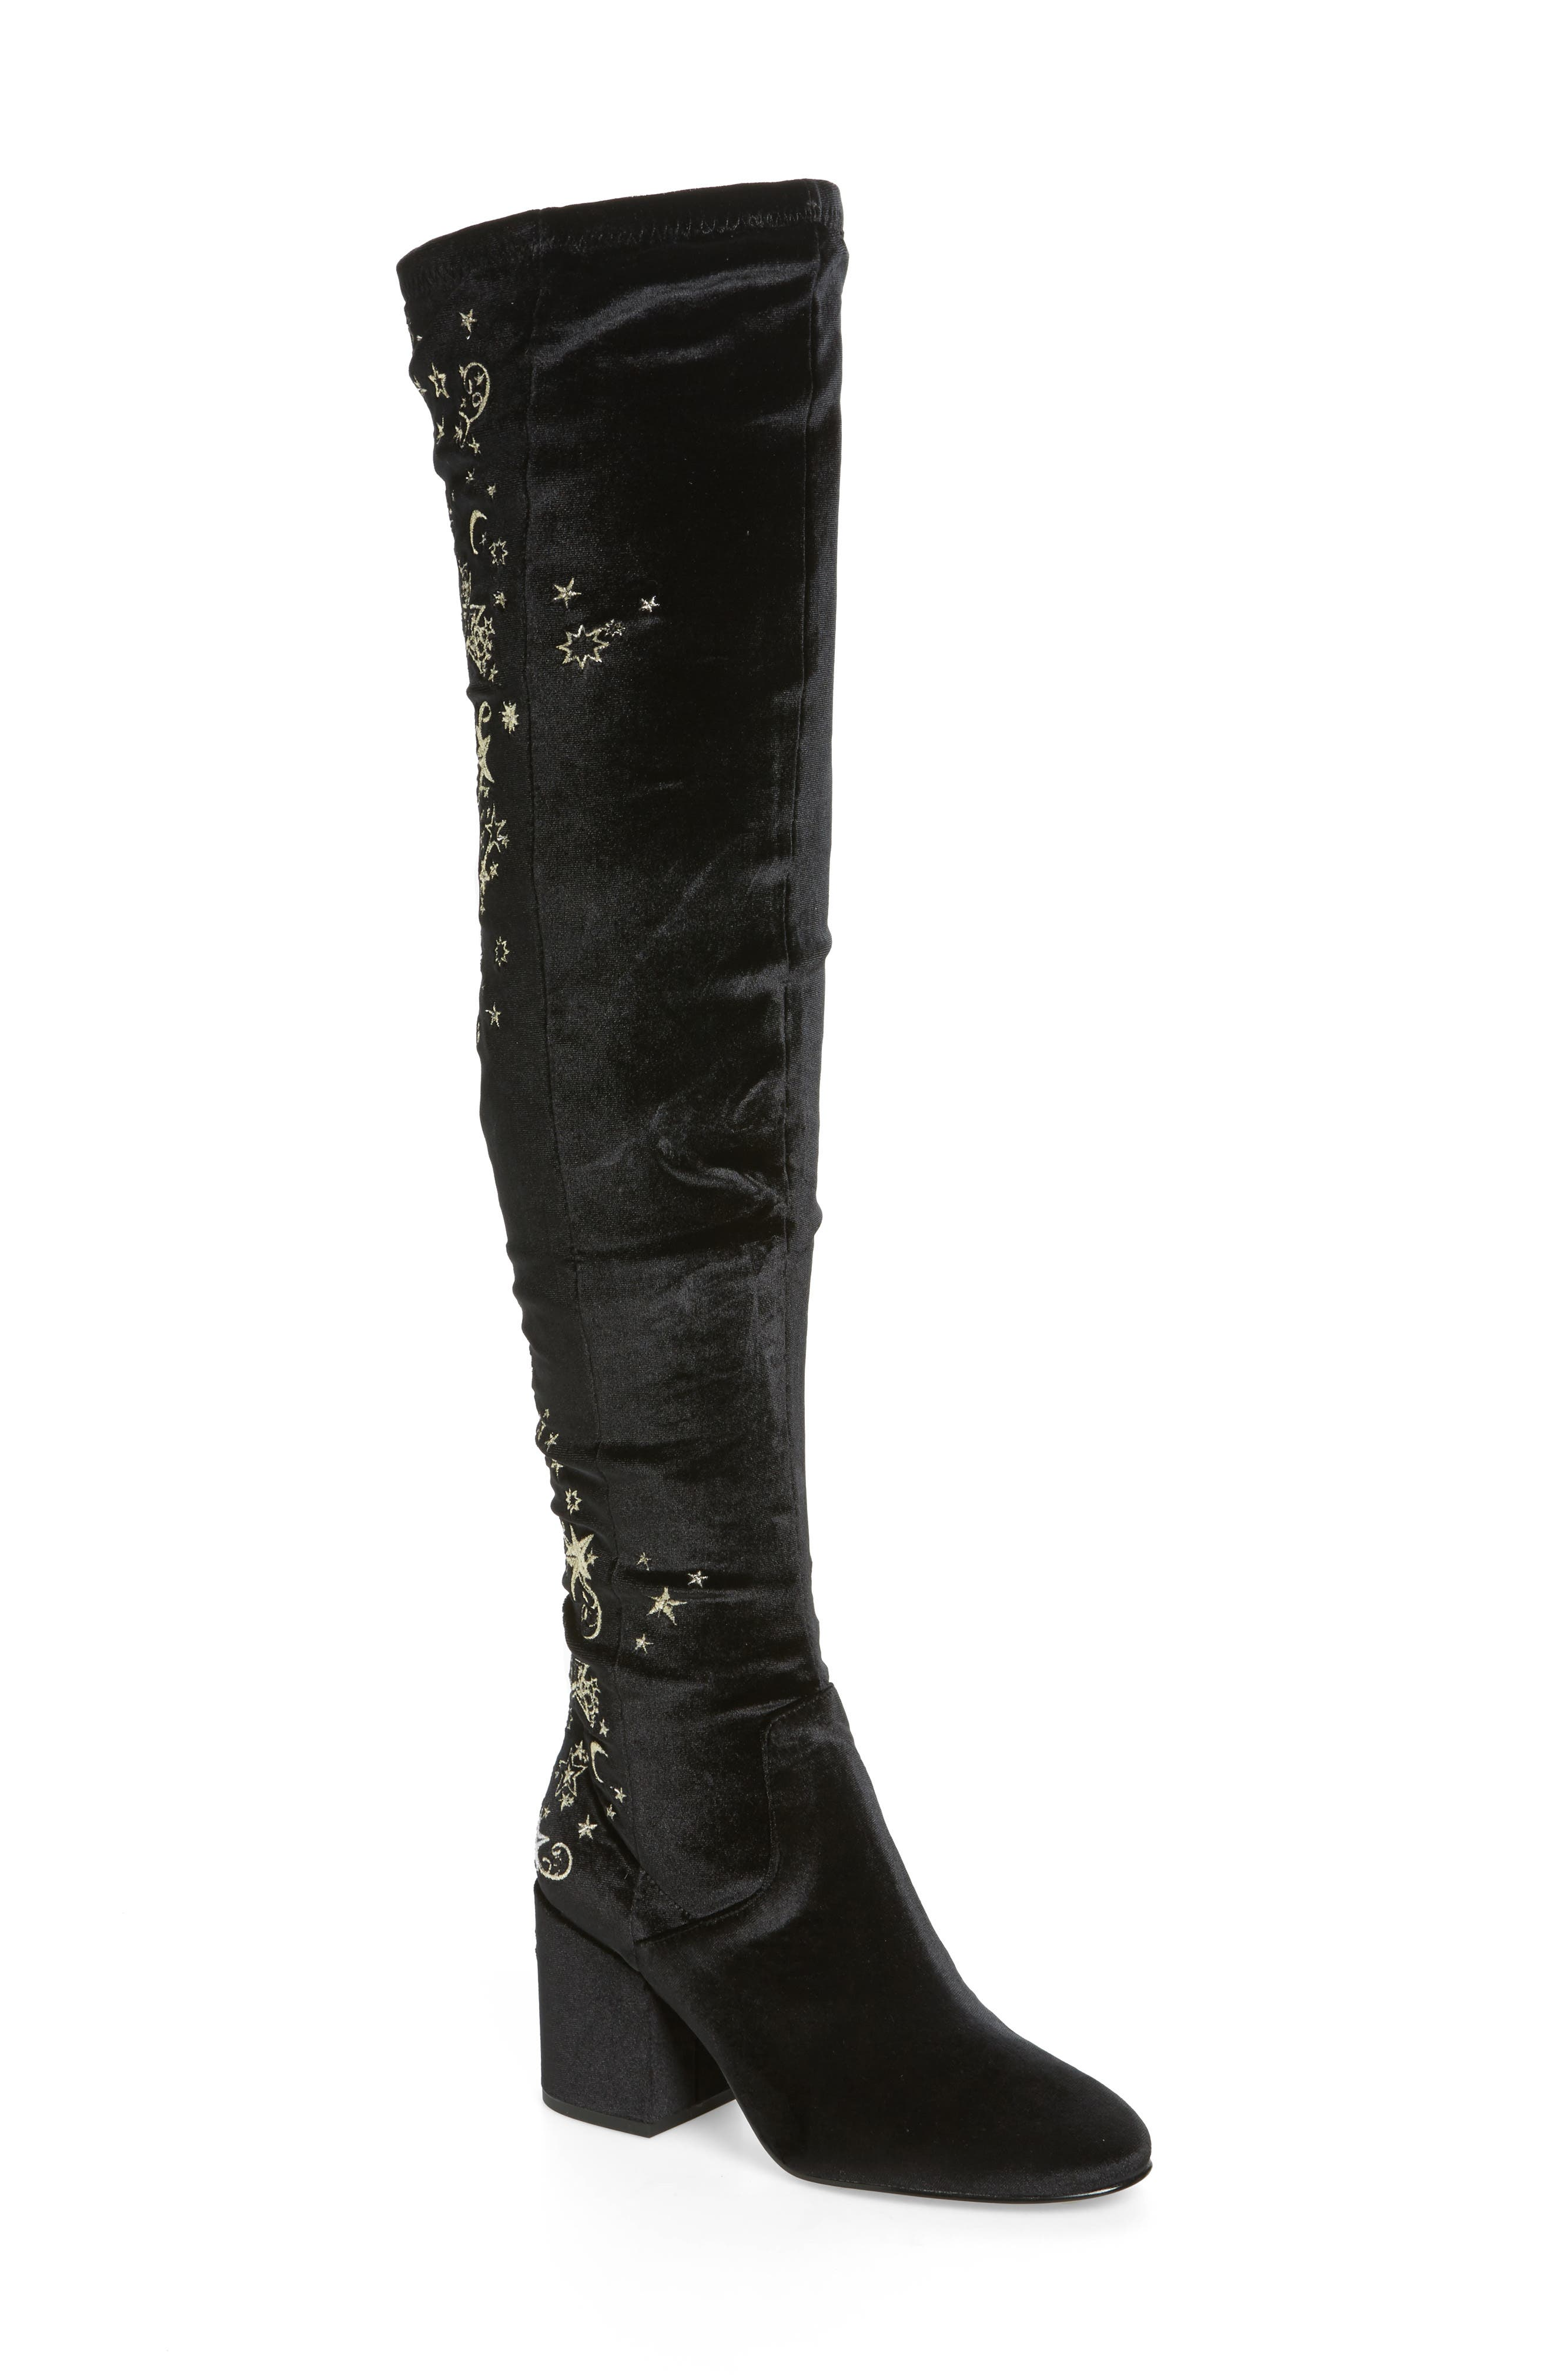 Alternate Image 1 Selected - Ash Eros Embroidered Velvet Over the Knee Boot (Women)